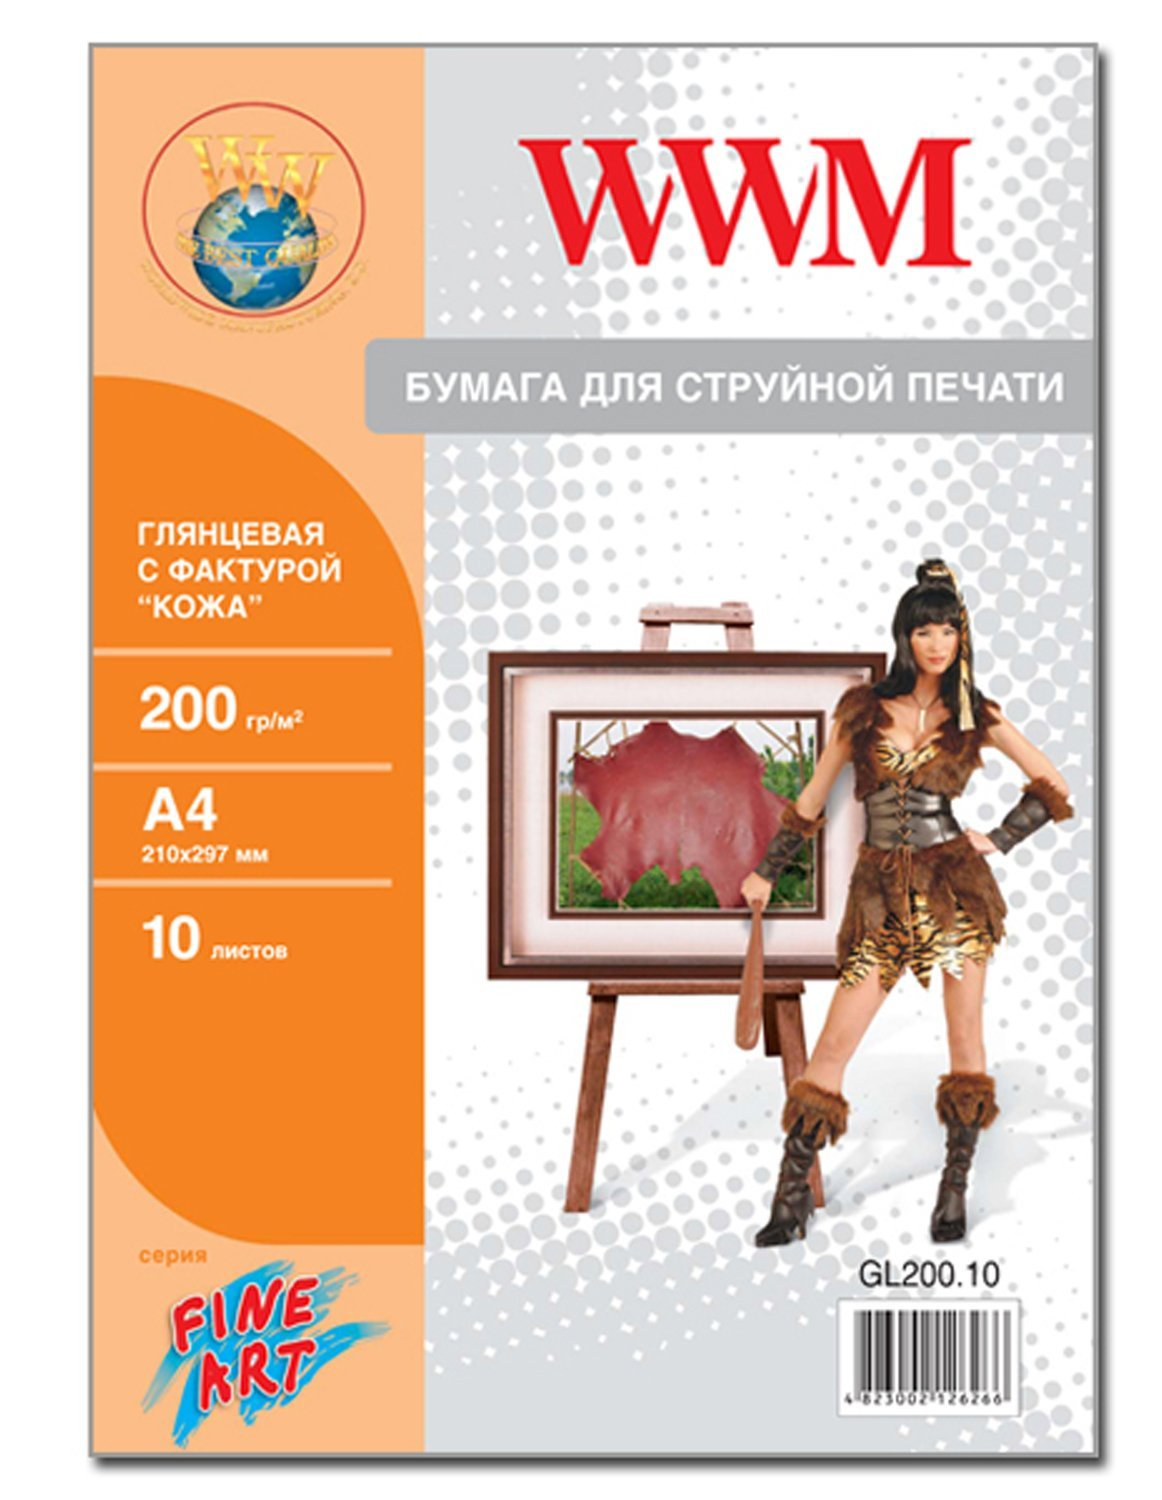 """Photo Paper Gloss, Glossy WWM """"SKIN"""", 11,7 x 8,3 Inches, 200gsm, 10 Sheets (GL200.10);, For Any Desktop Inkjet Printers, Excellent White Inkjet Printer Photo Paper for Printing Color Images, Gloss Coated, Pack of 10, 200gsm, Whiteness 96%, Brightness 108% on 457nm, Size 11,7x8,3 Borderless. Glossy"""